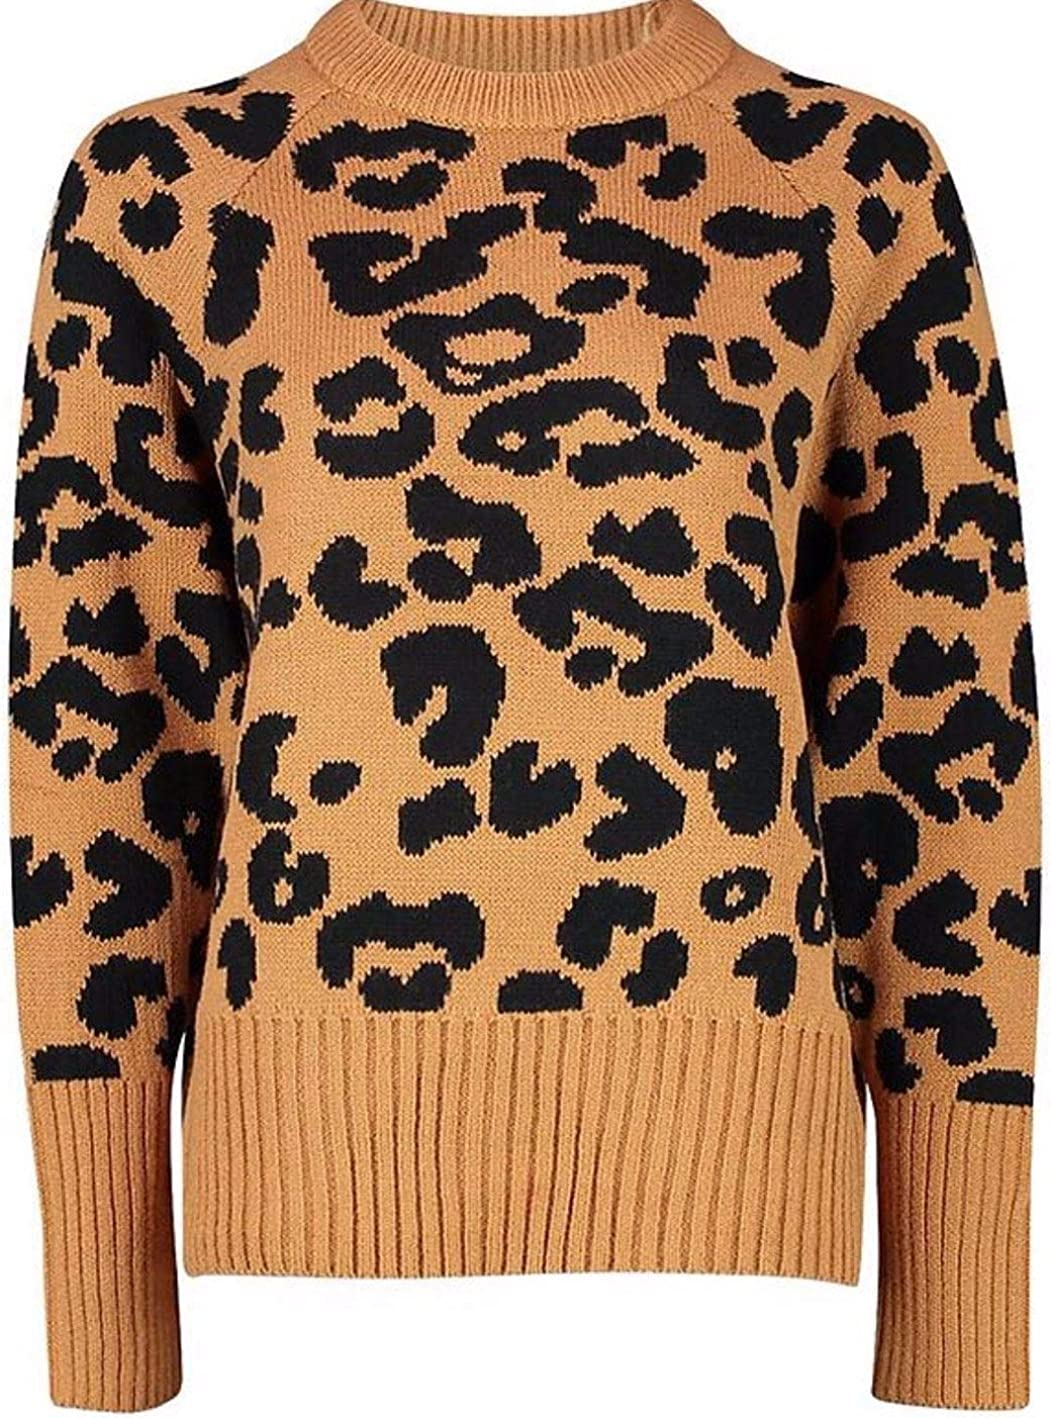 REAL LIFE FASHION LTD Ladies Long Sleeves Leopard Print Sweater Crew Neck Top Womens Knitted Jumper